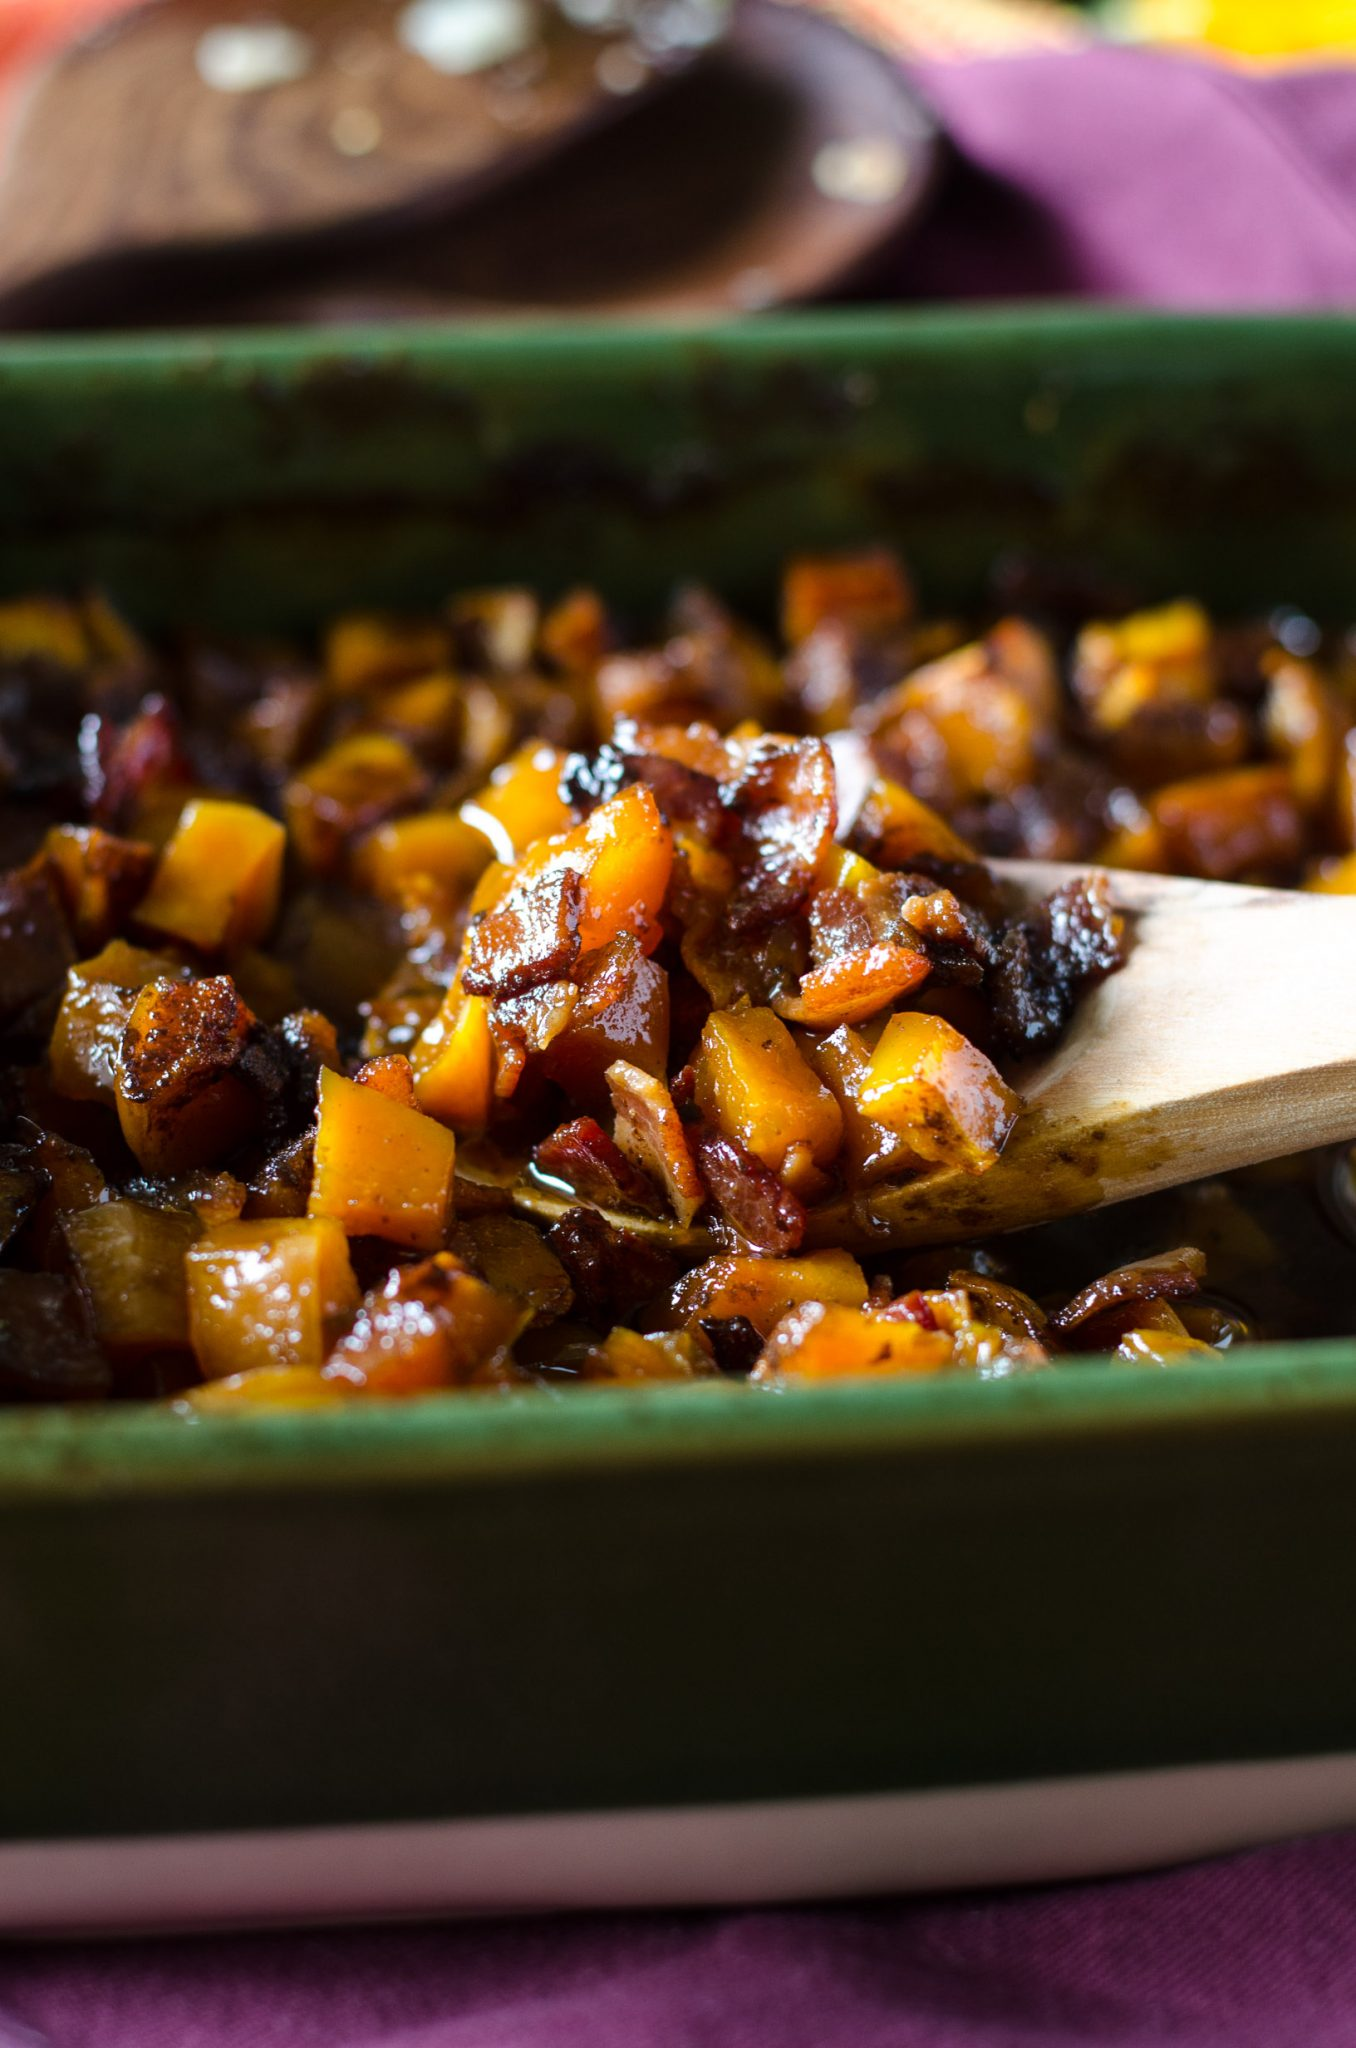 Bourbon bacon brown sugar butternut squash in a green baking dish